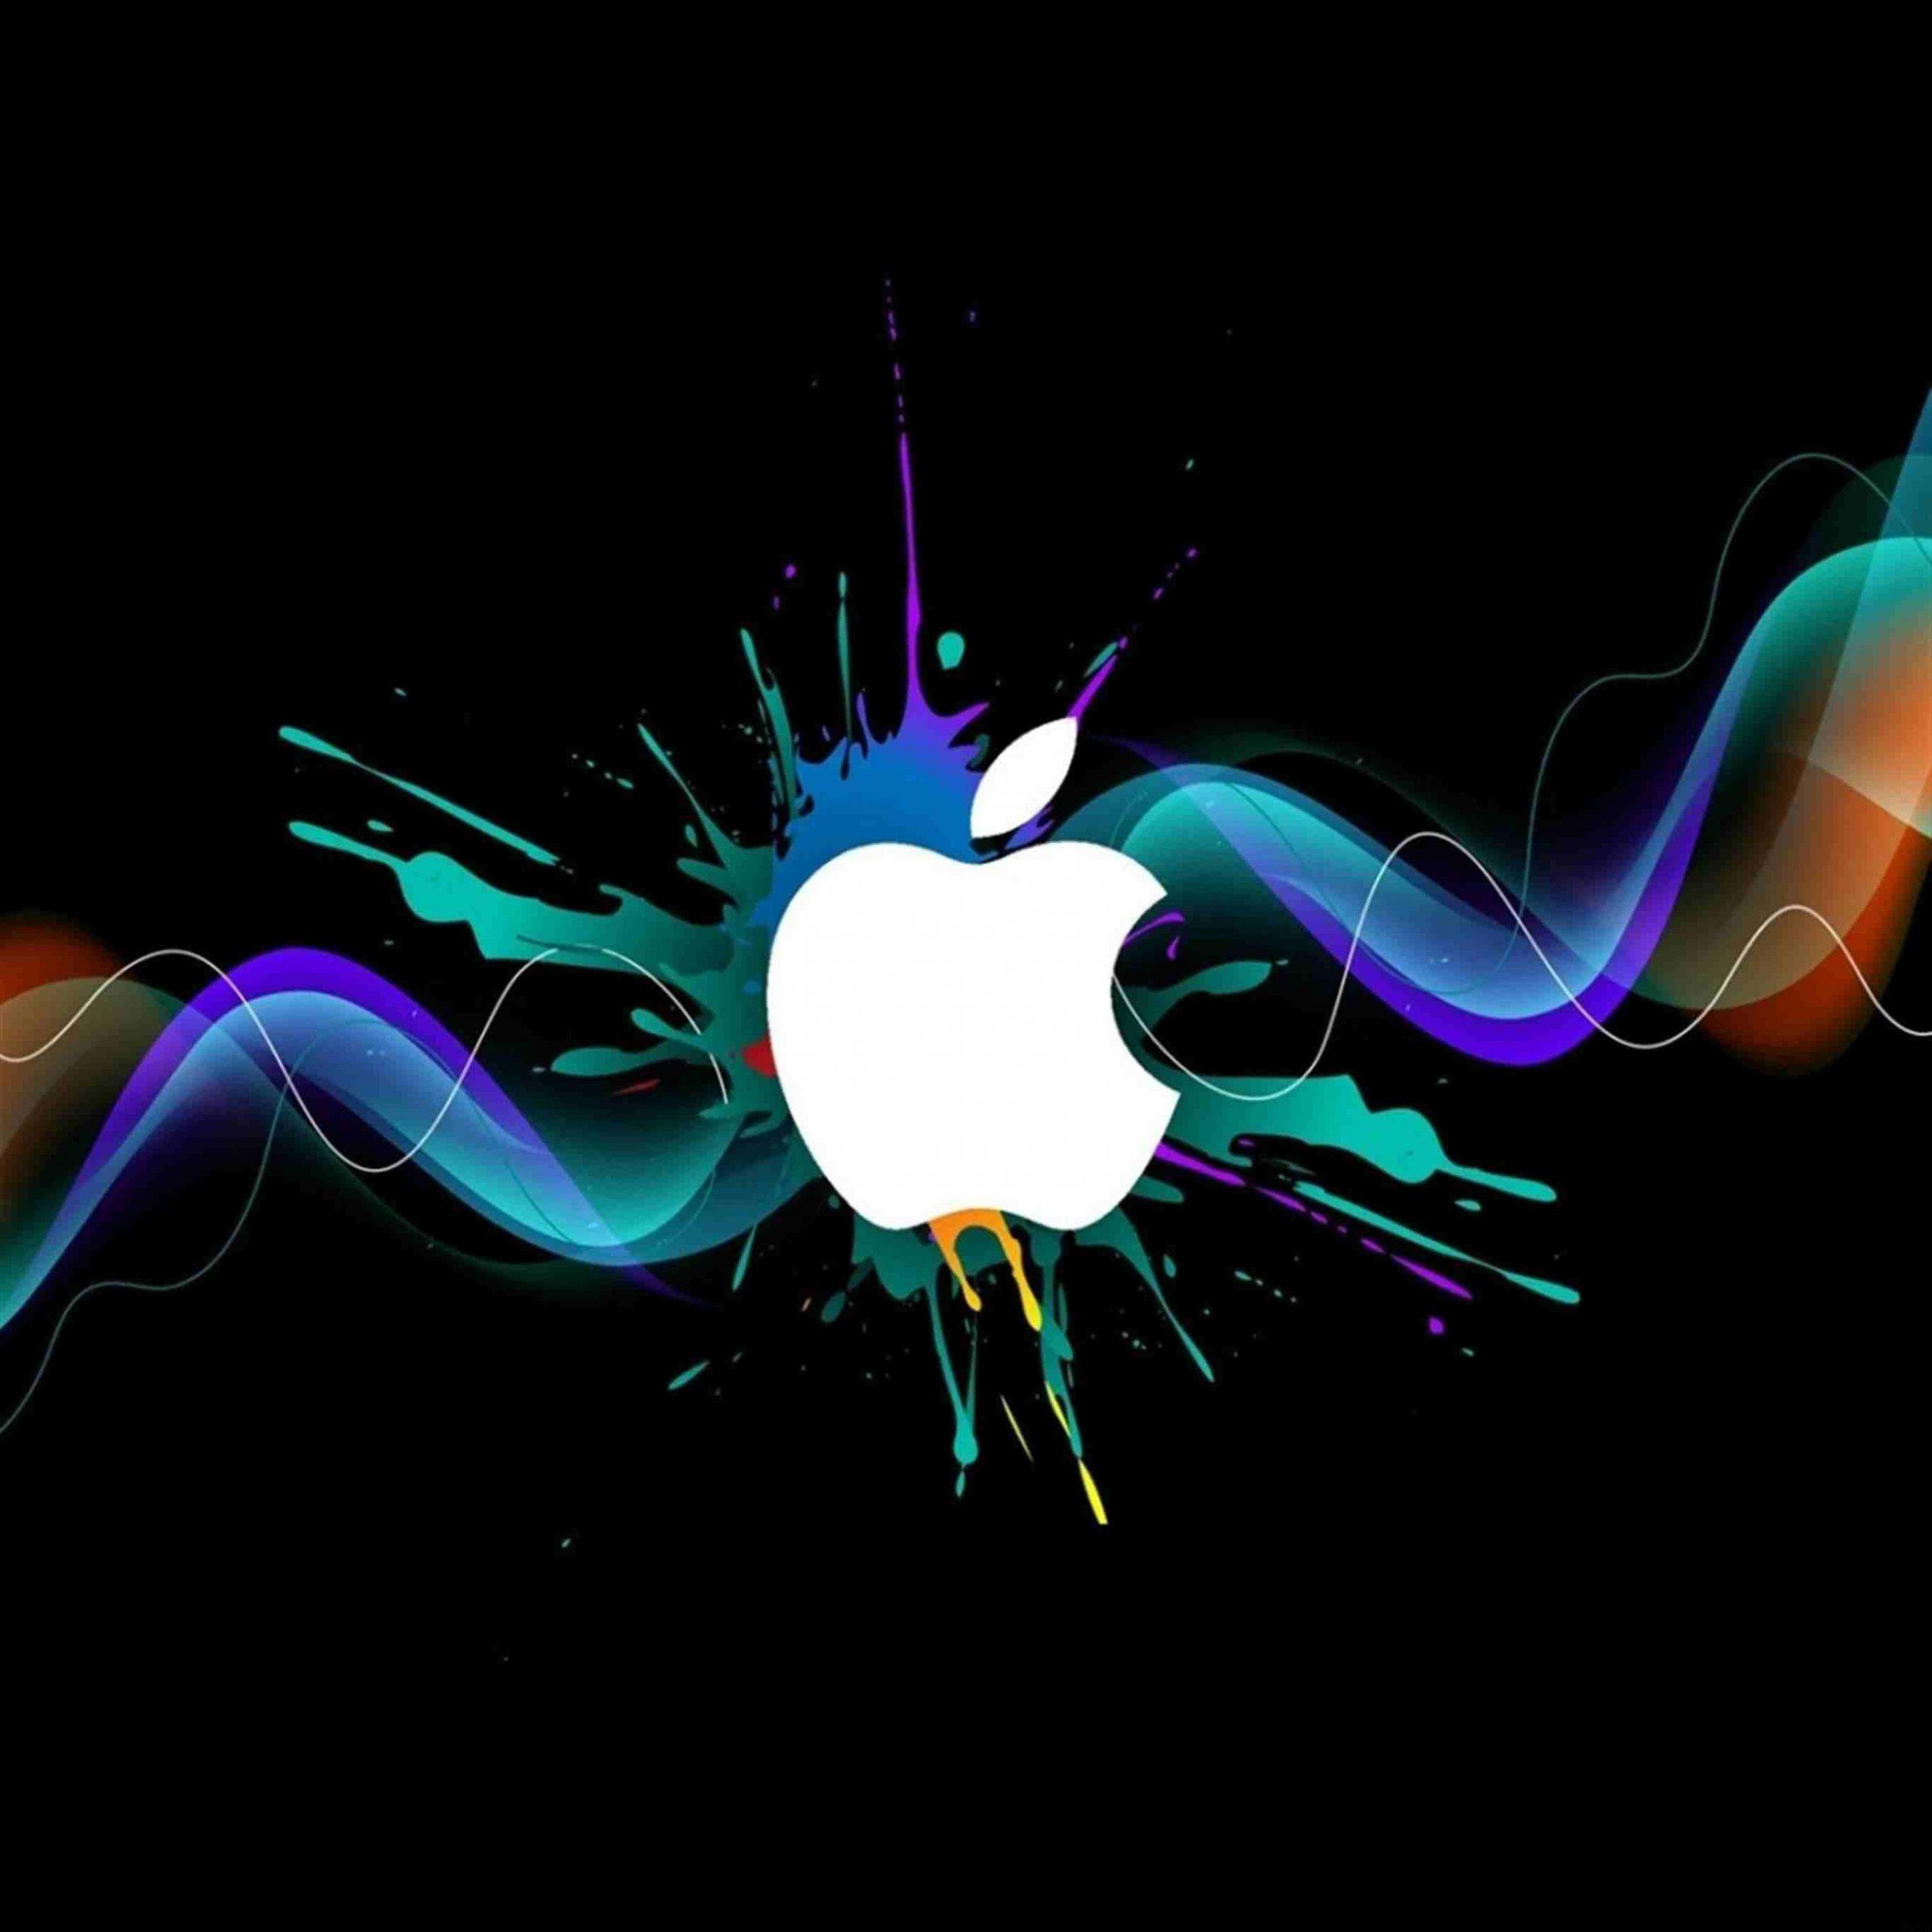 Apple iPad Pro Wallpapers 4s3 10 scaled - تصاویر آیپد اپل | Apple iPad Pro Wallpapers